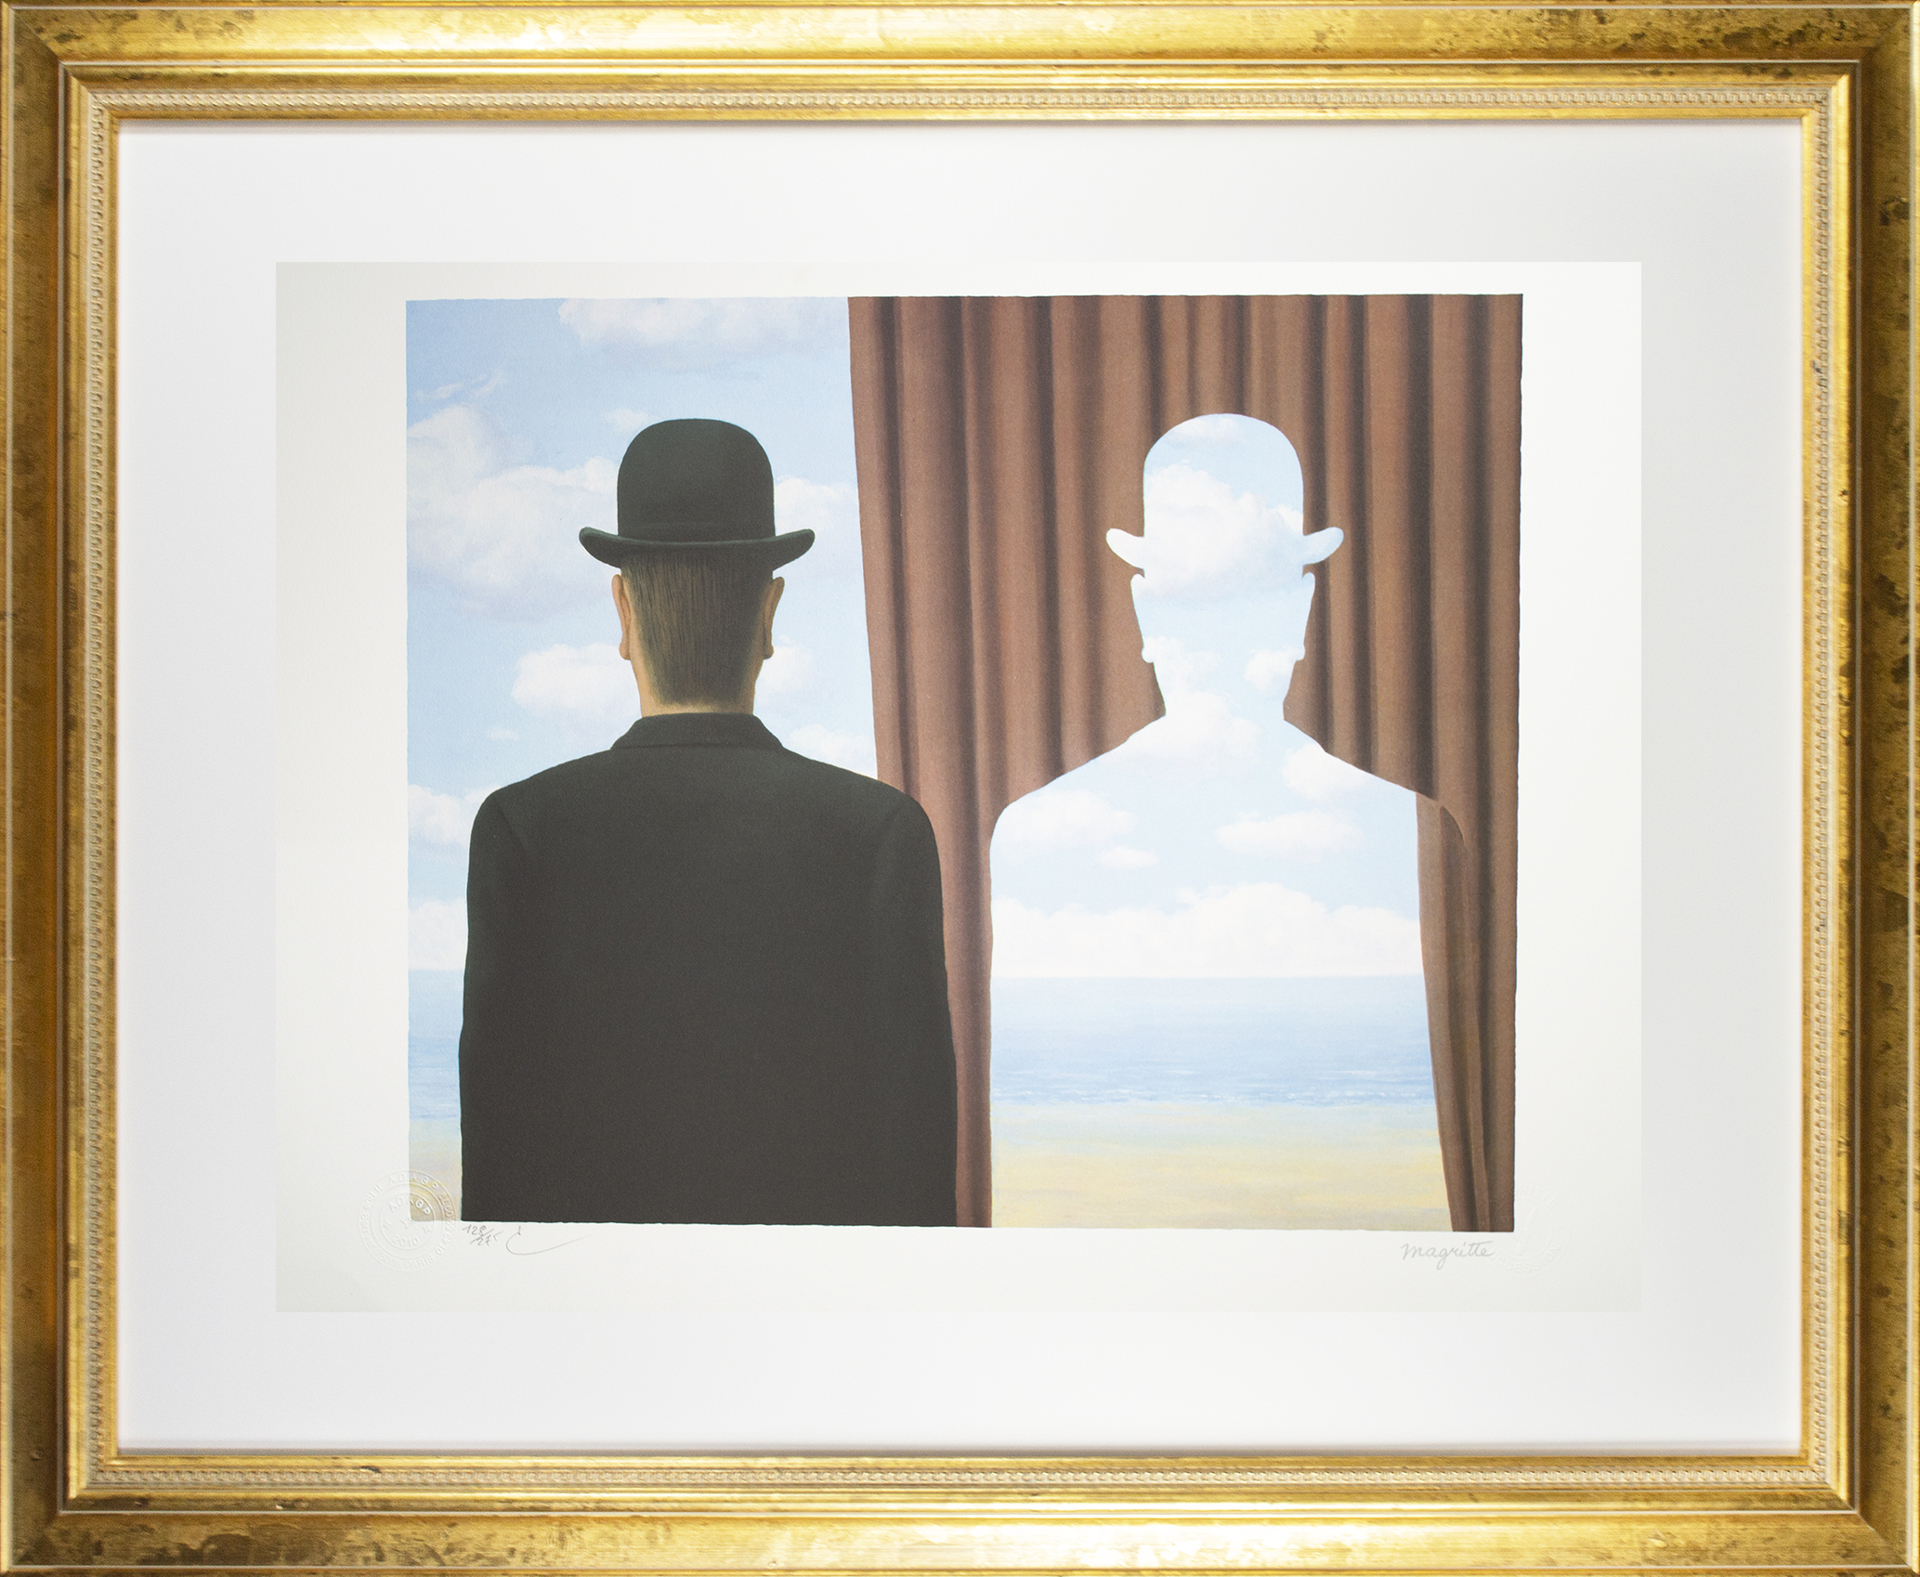 Décalcomanie (Decalcomania) by Rene Magritte